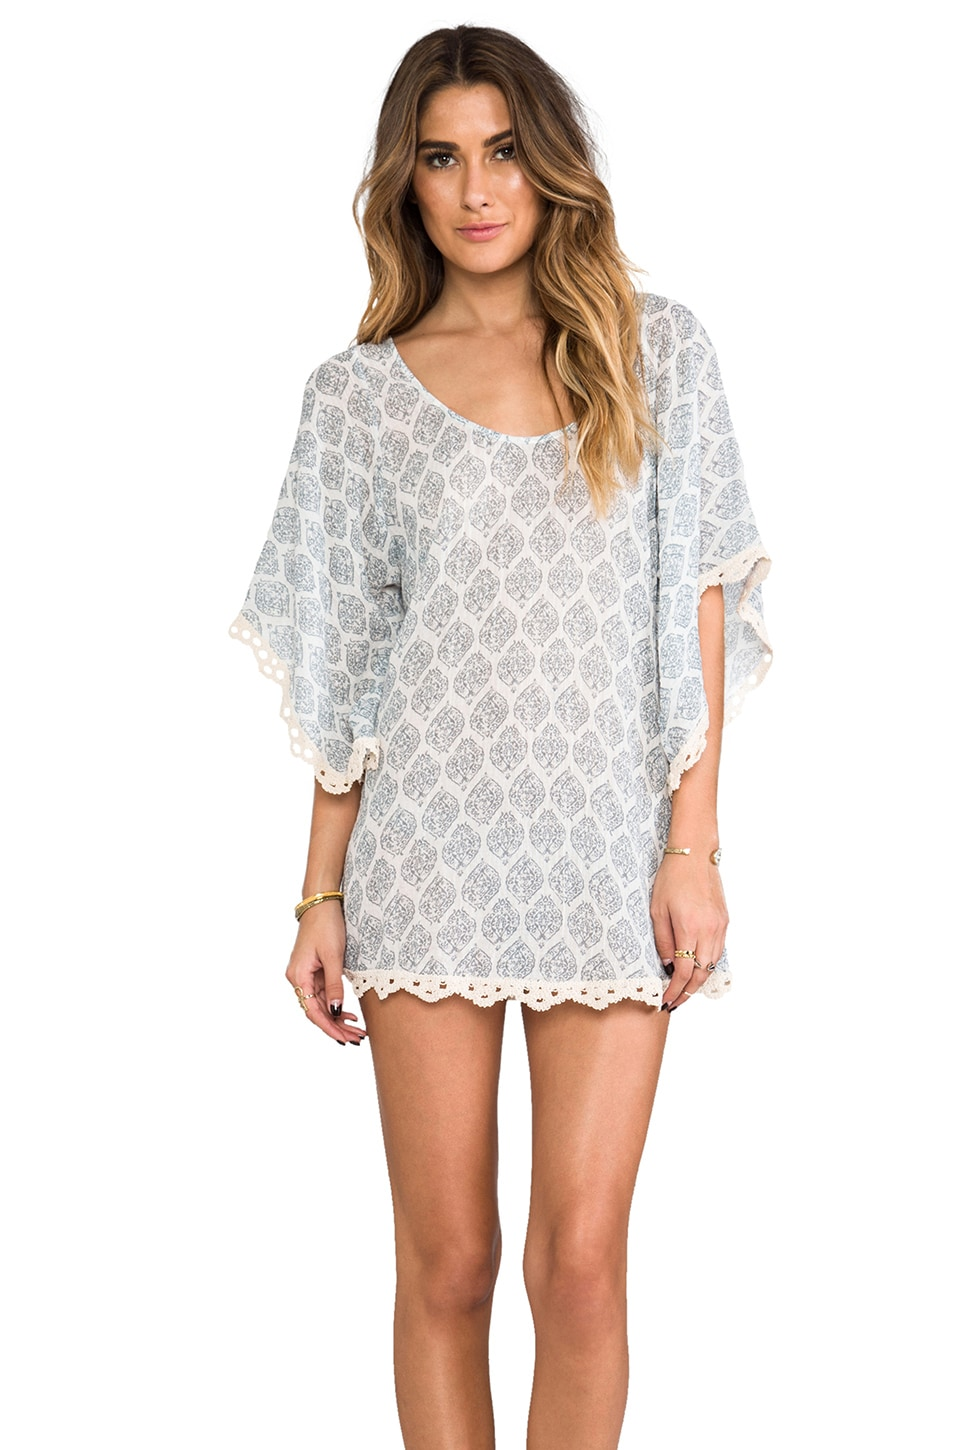 eberjey Clara Tunic in Beached Blue